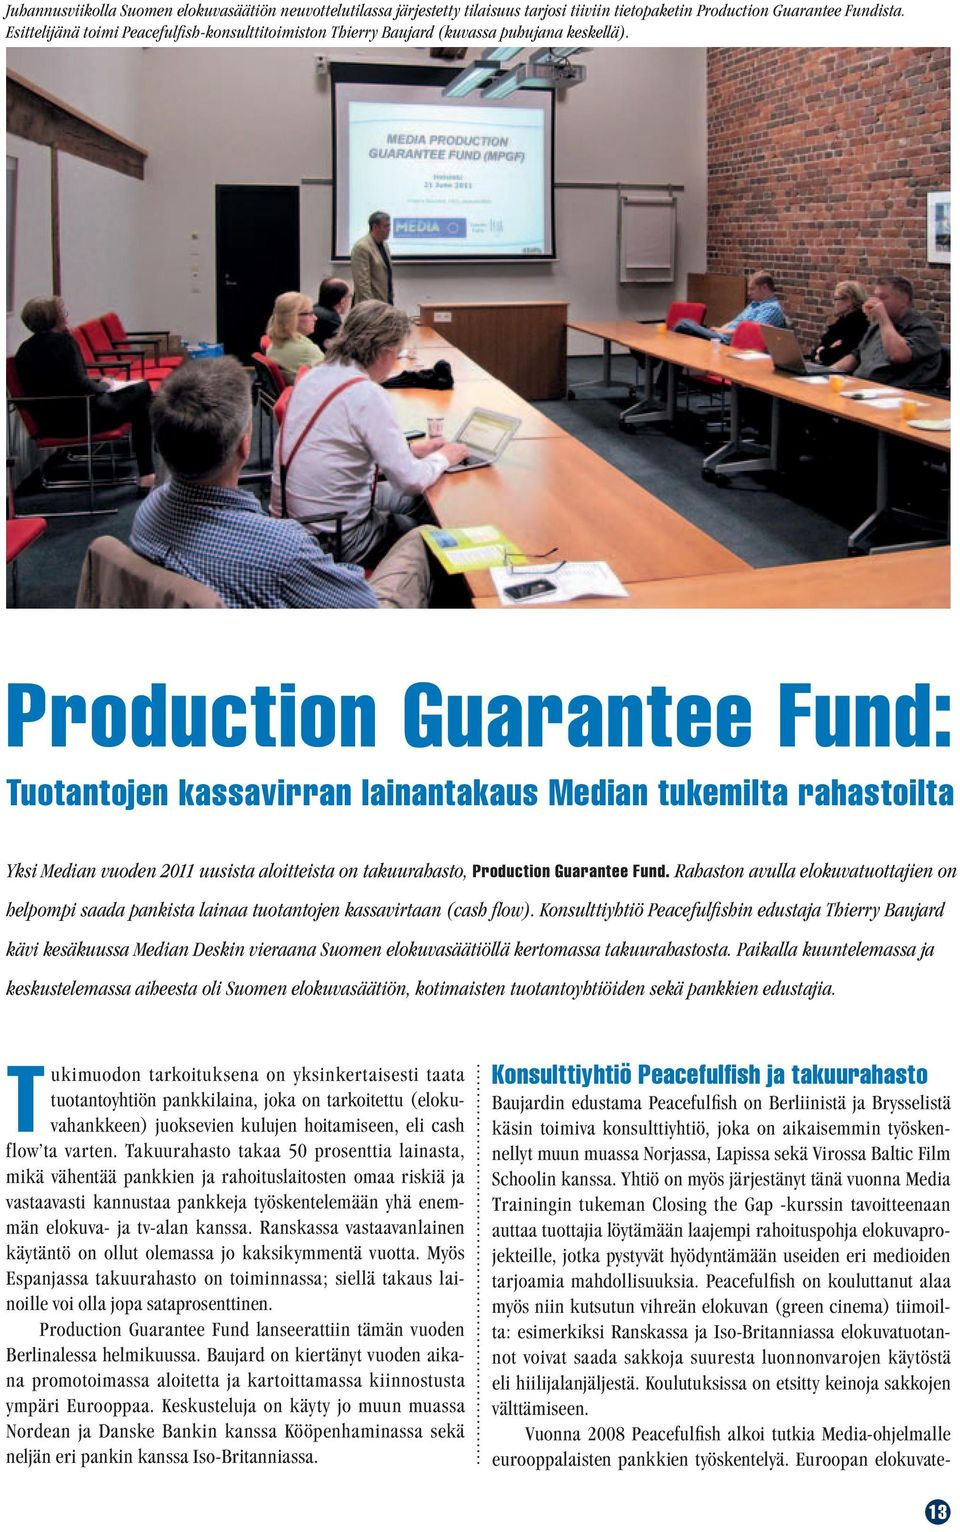 Production Guarantee Fund: Tuotantojen kassavirran lainantakaus Median tukemilta rahastoilta Yksi Median vuoden 2011 uusista aloitteista on takuurahasto, Production Guarantee Fund.